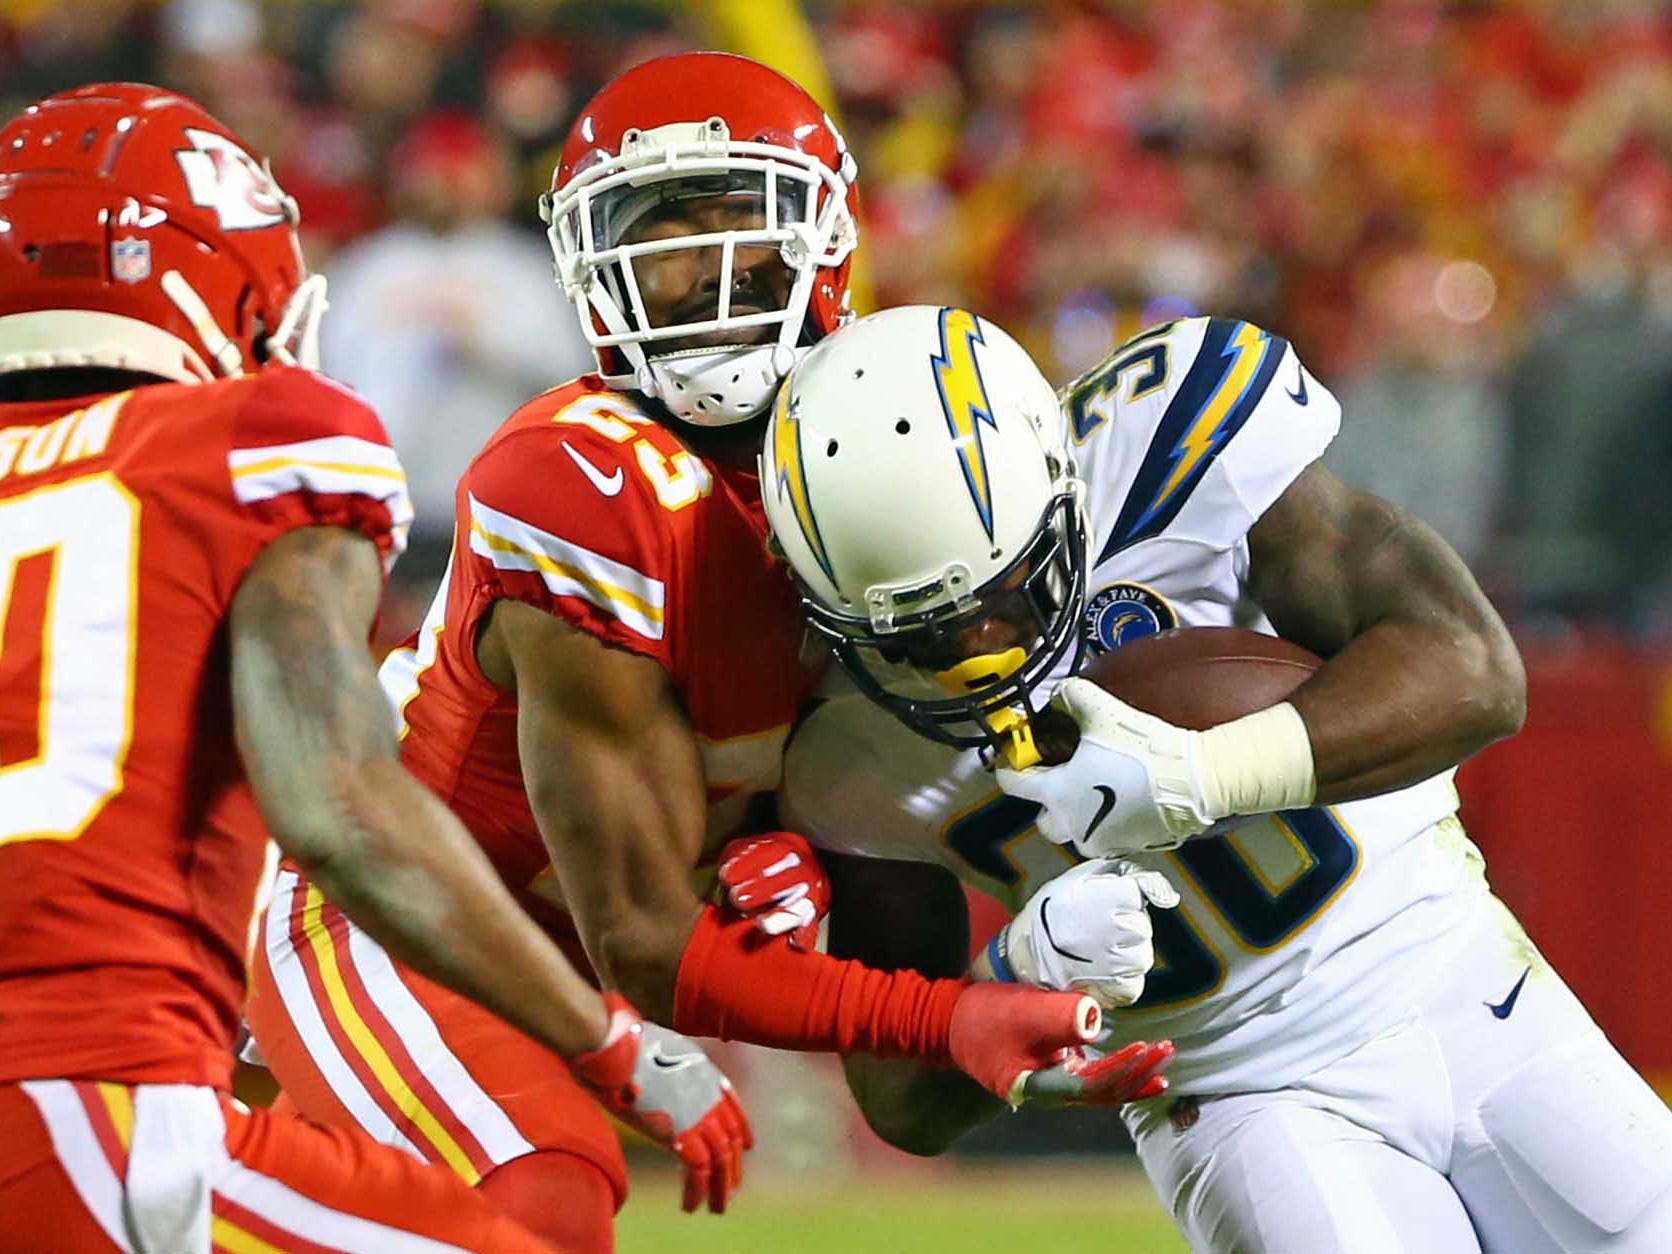 Los Angeles Chargers running back Detrez Newsome runs against the Kansas City Chiefs in the first half at Arrowhead Stadium.